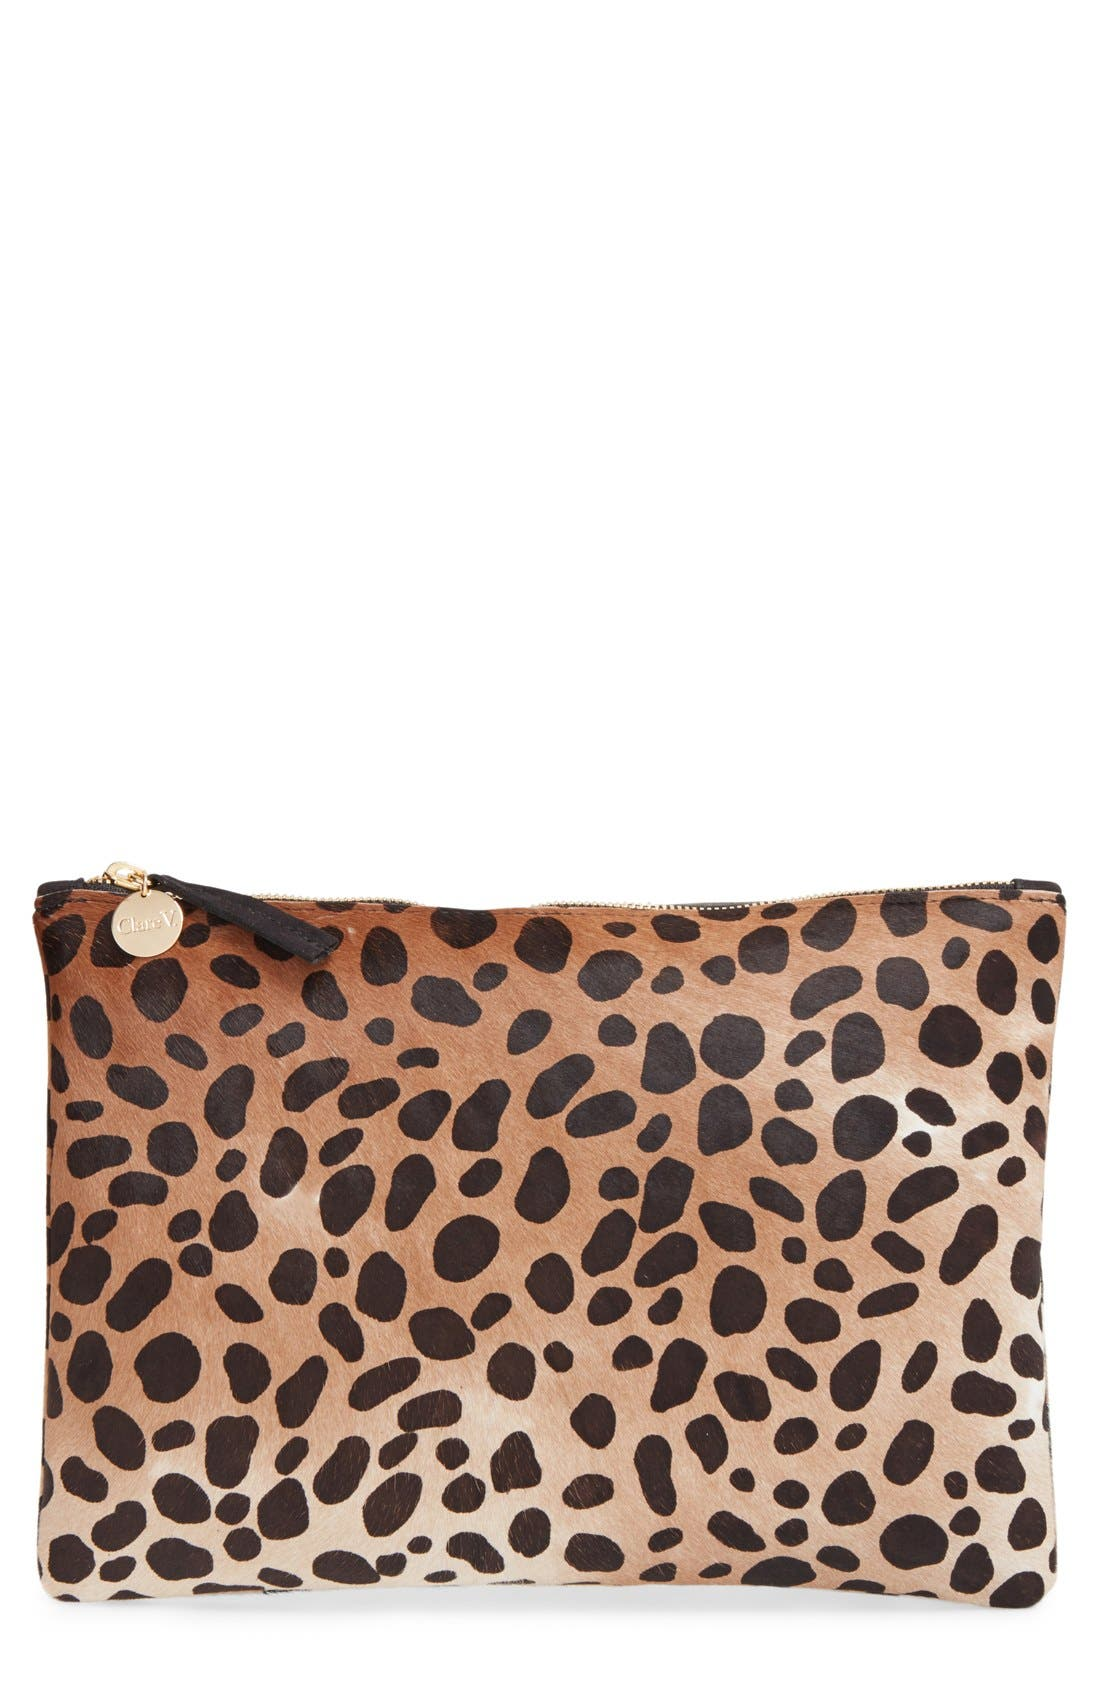 Main Image - Clare V. Genuine Calf Hair Leopard Print Zip Clutch